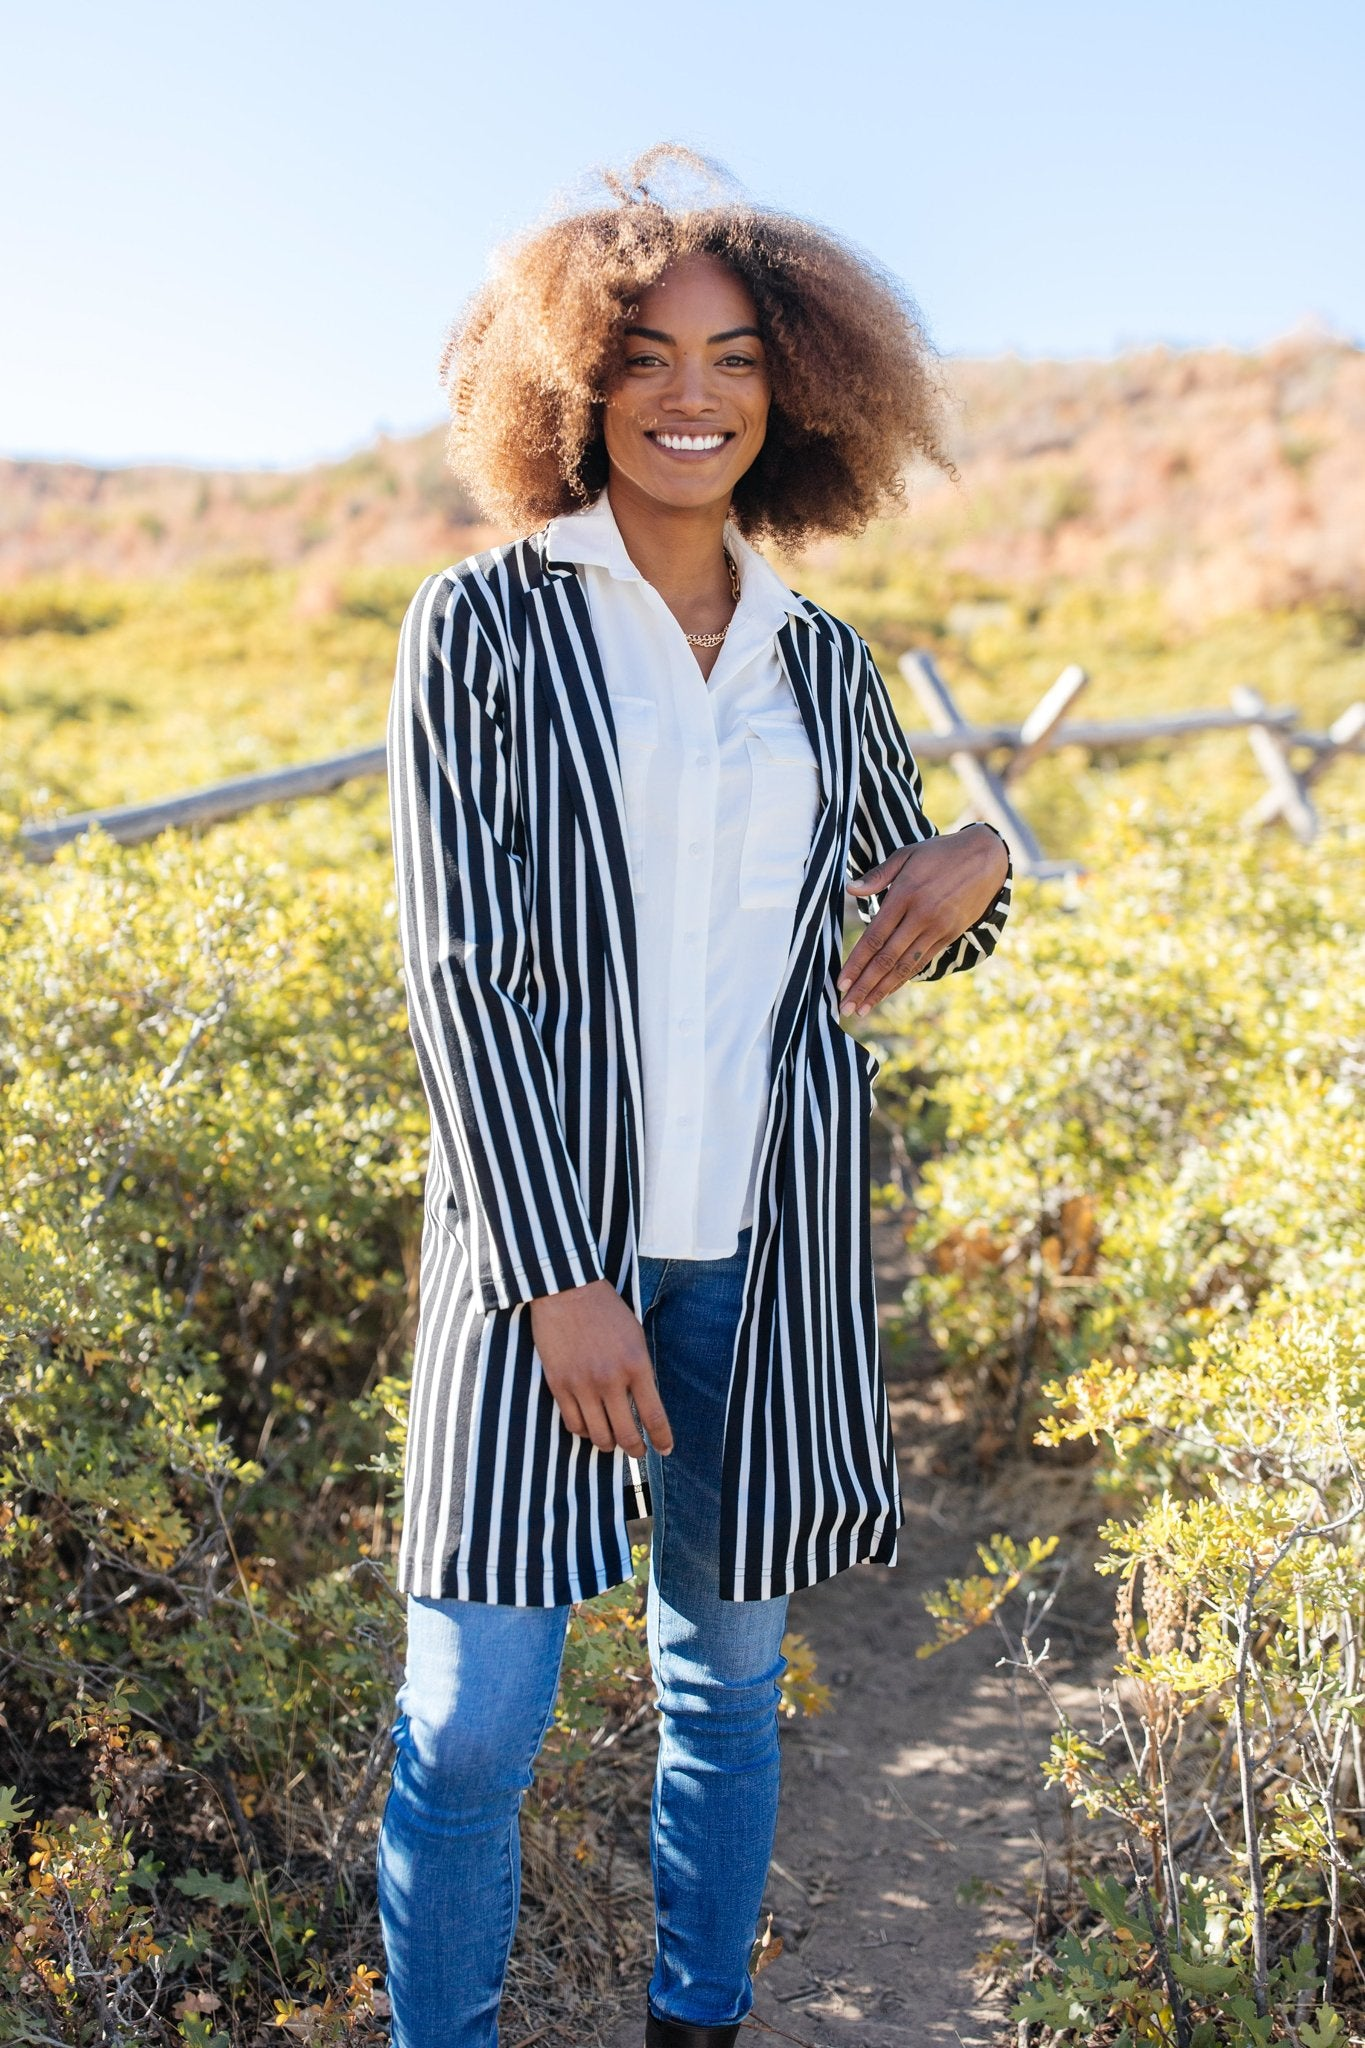 The Tall Stripes Jacket